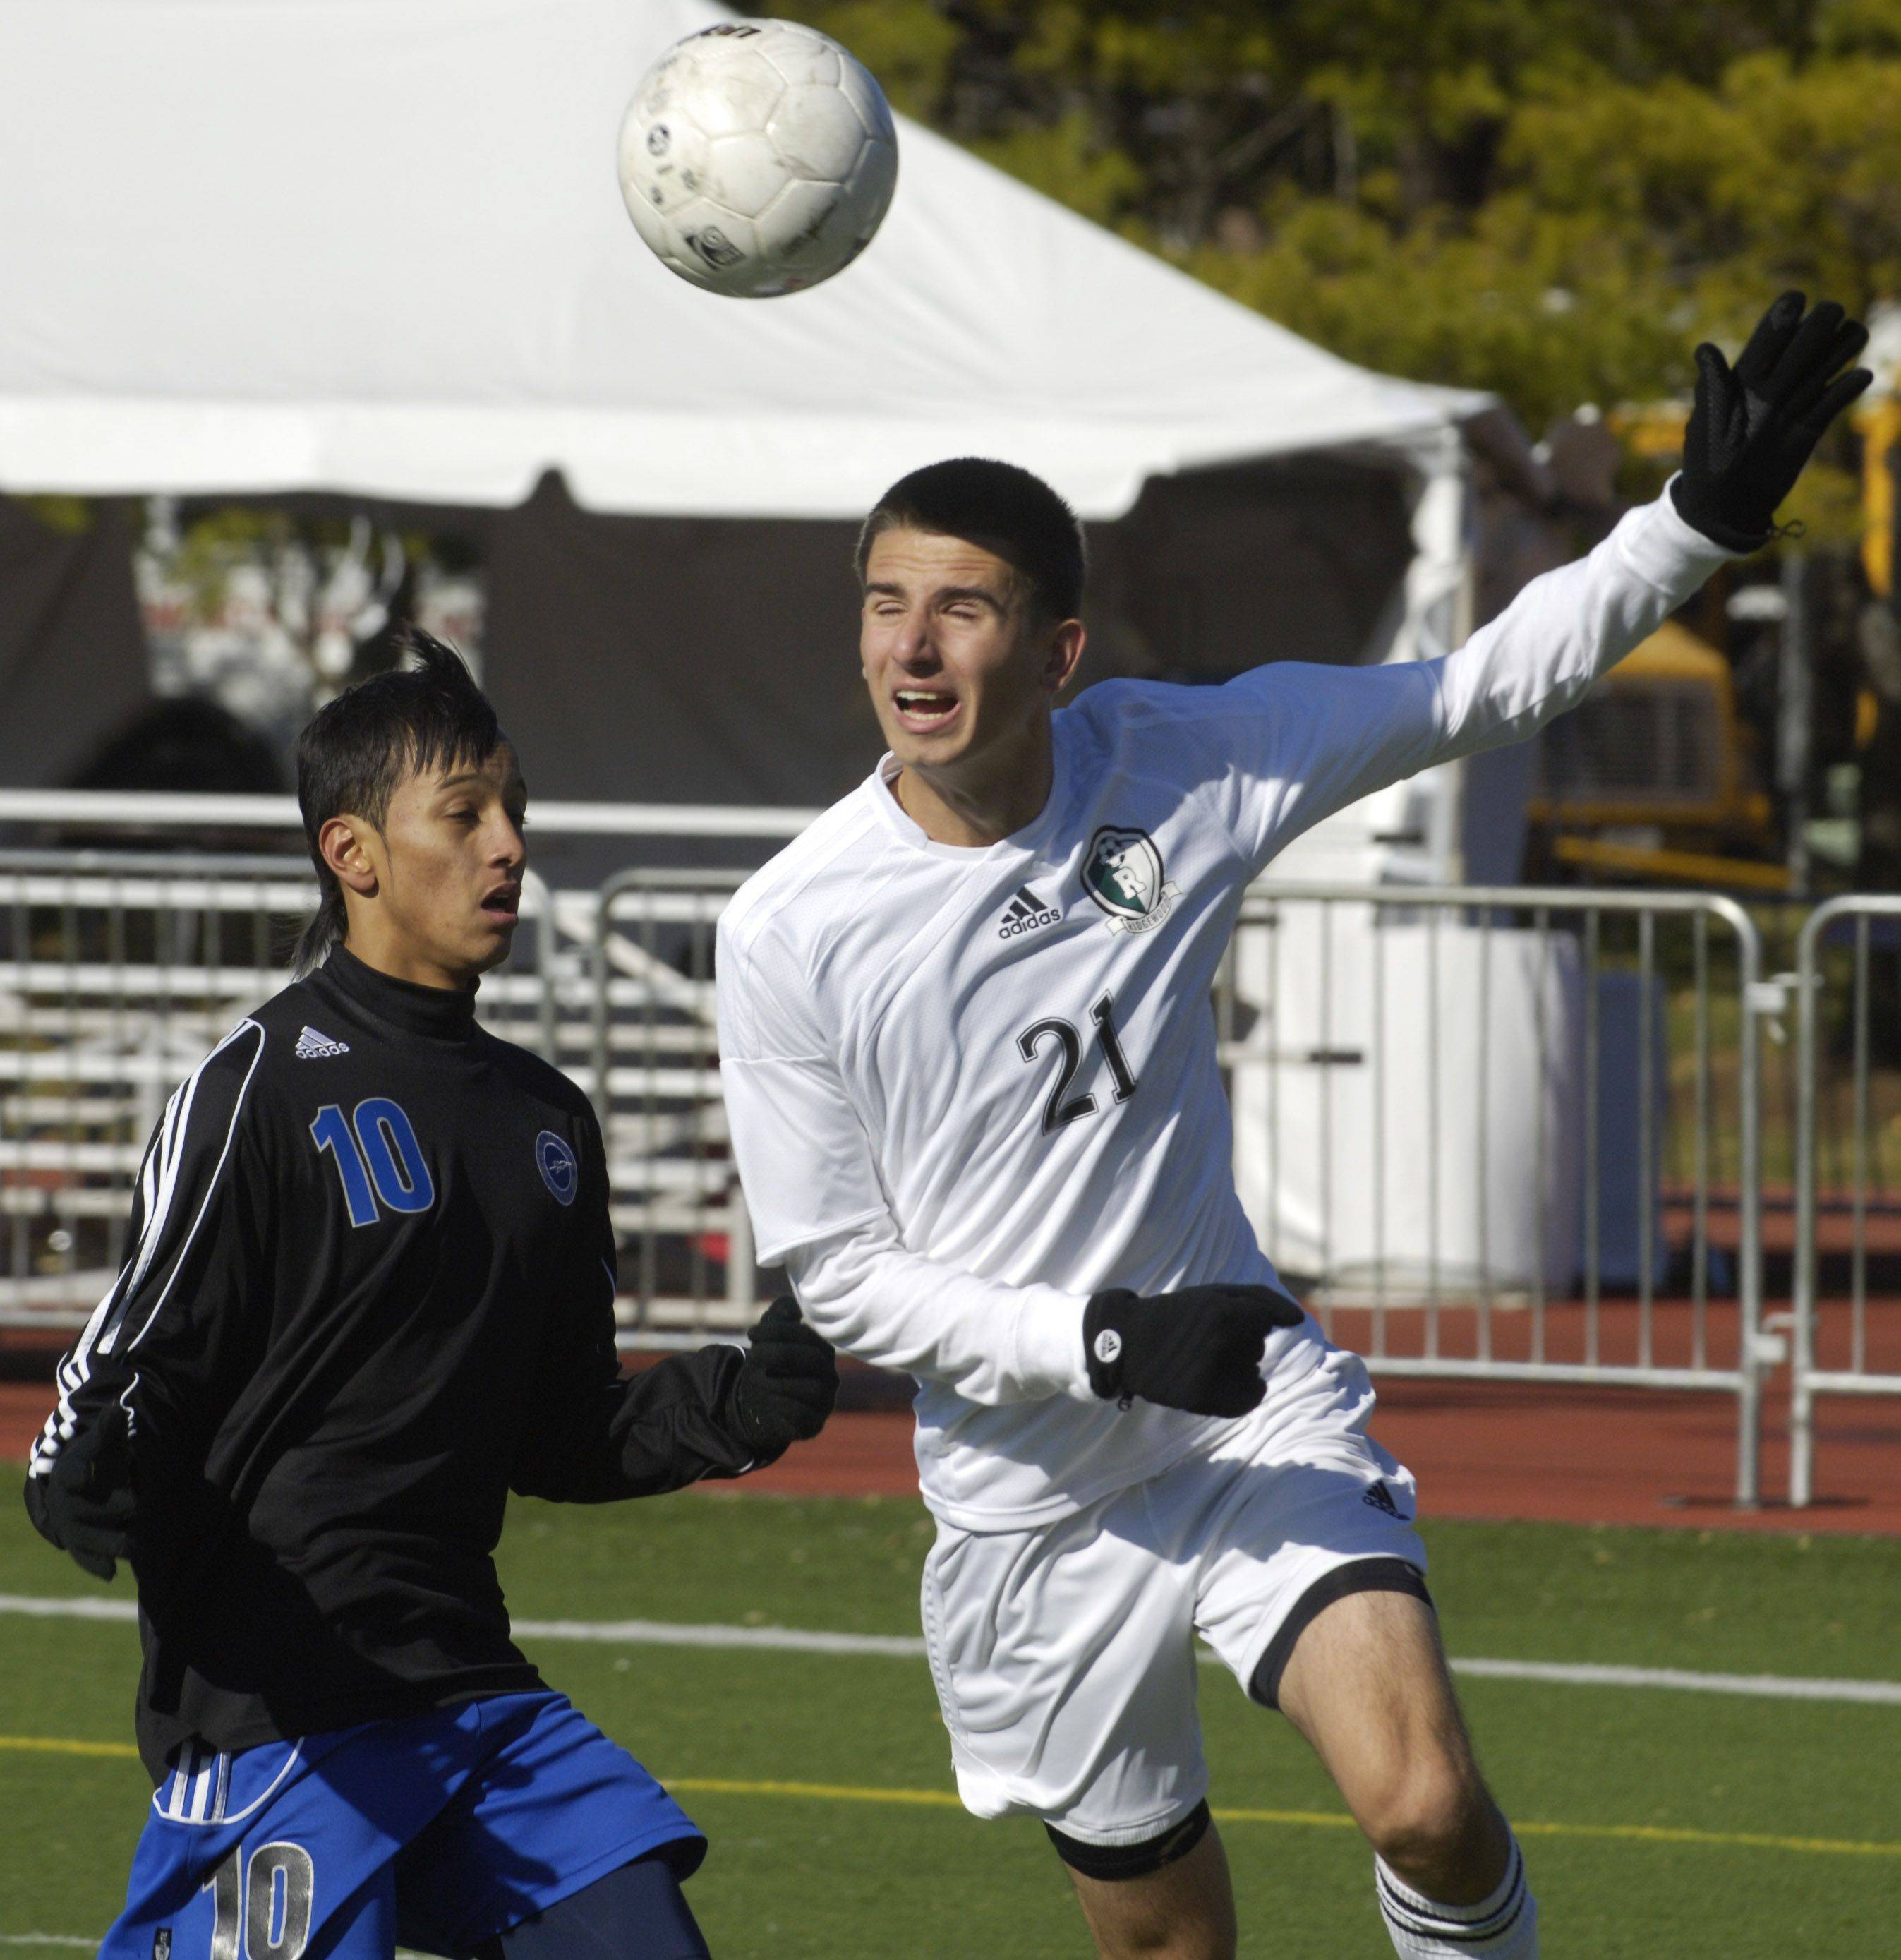 Irvin Grepo of Ridgewood, right, tries to direct the ball past Burlington Central's Alexis Camarena.